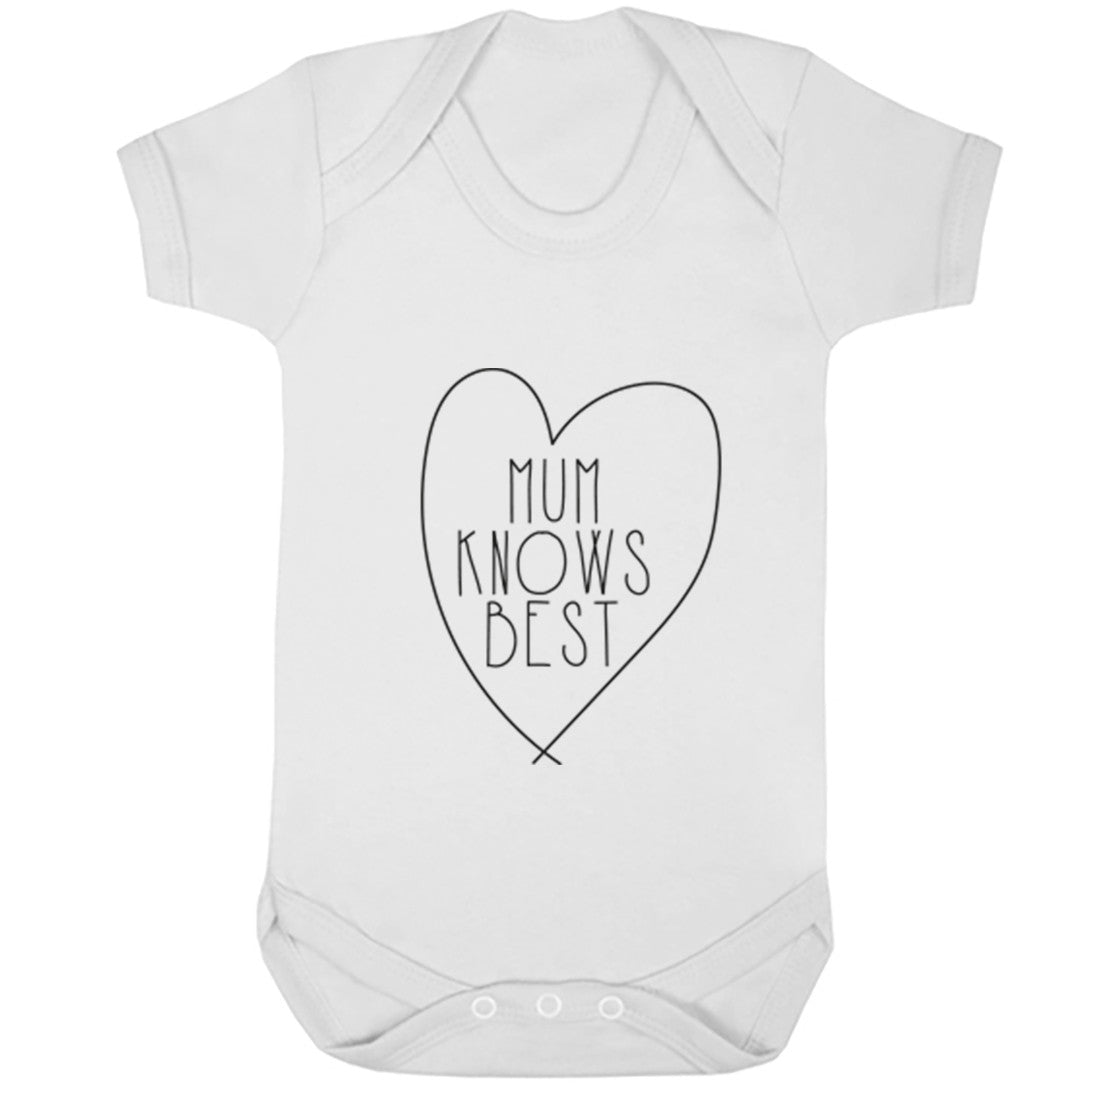 Mum Knows Best Baby Vest K0325